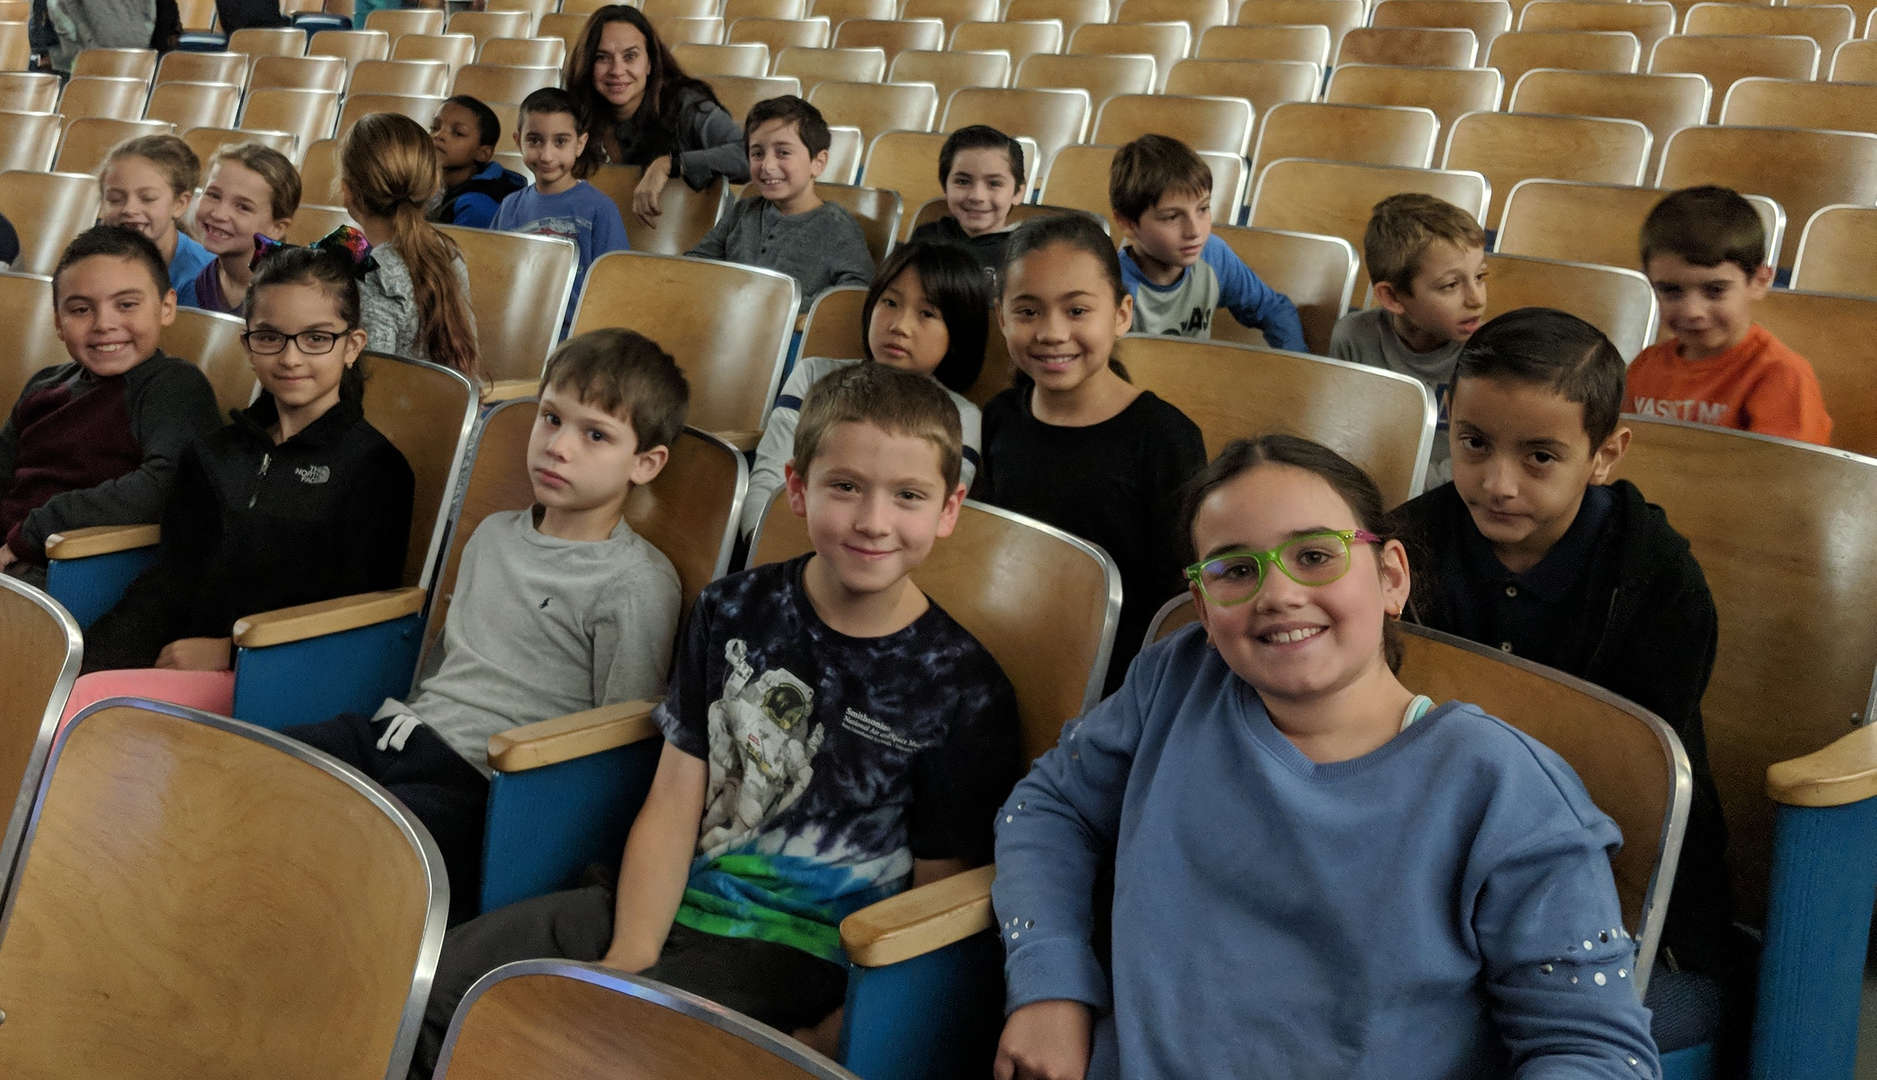 Third grade students sitting in the auditorium for the Read-A-Thon